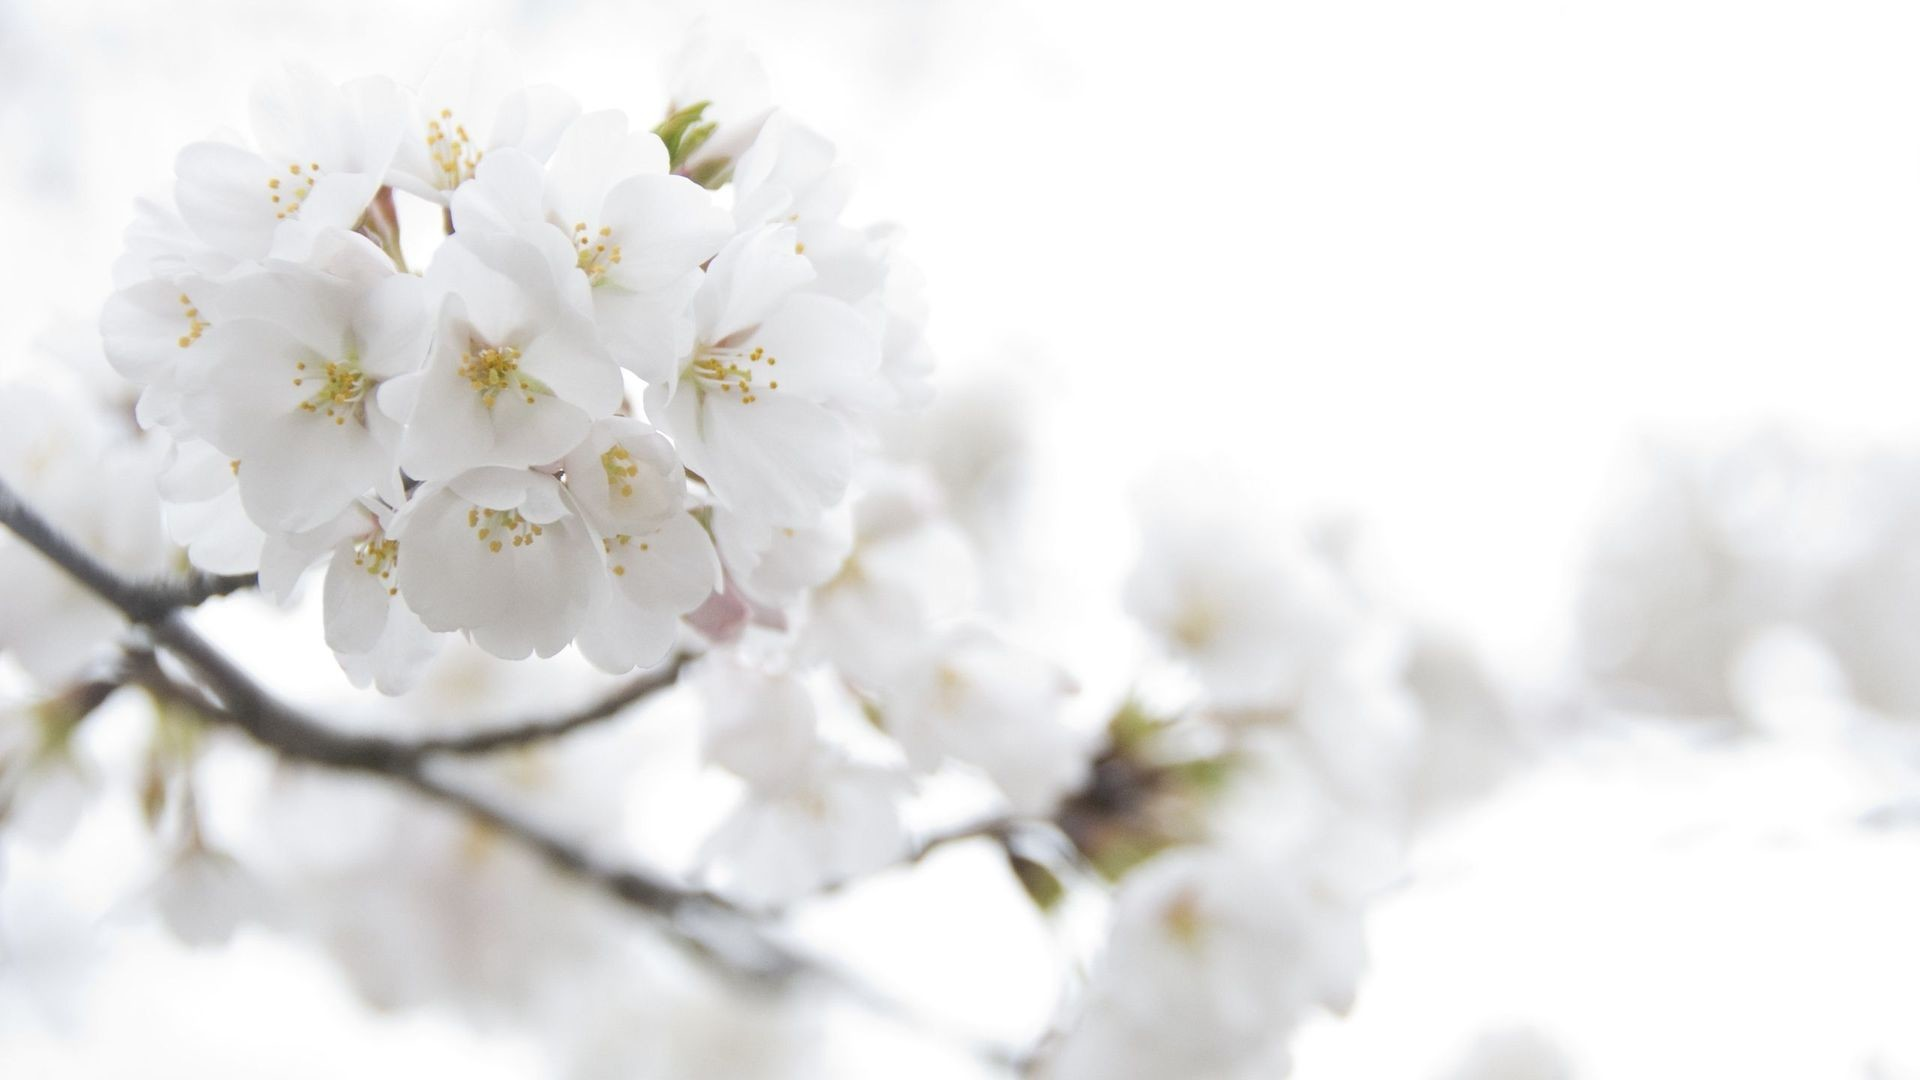 Backgrounds of White Flowers   1920×1080